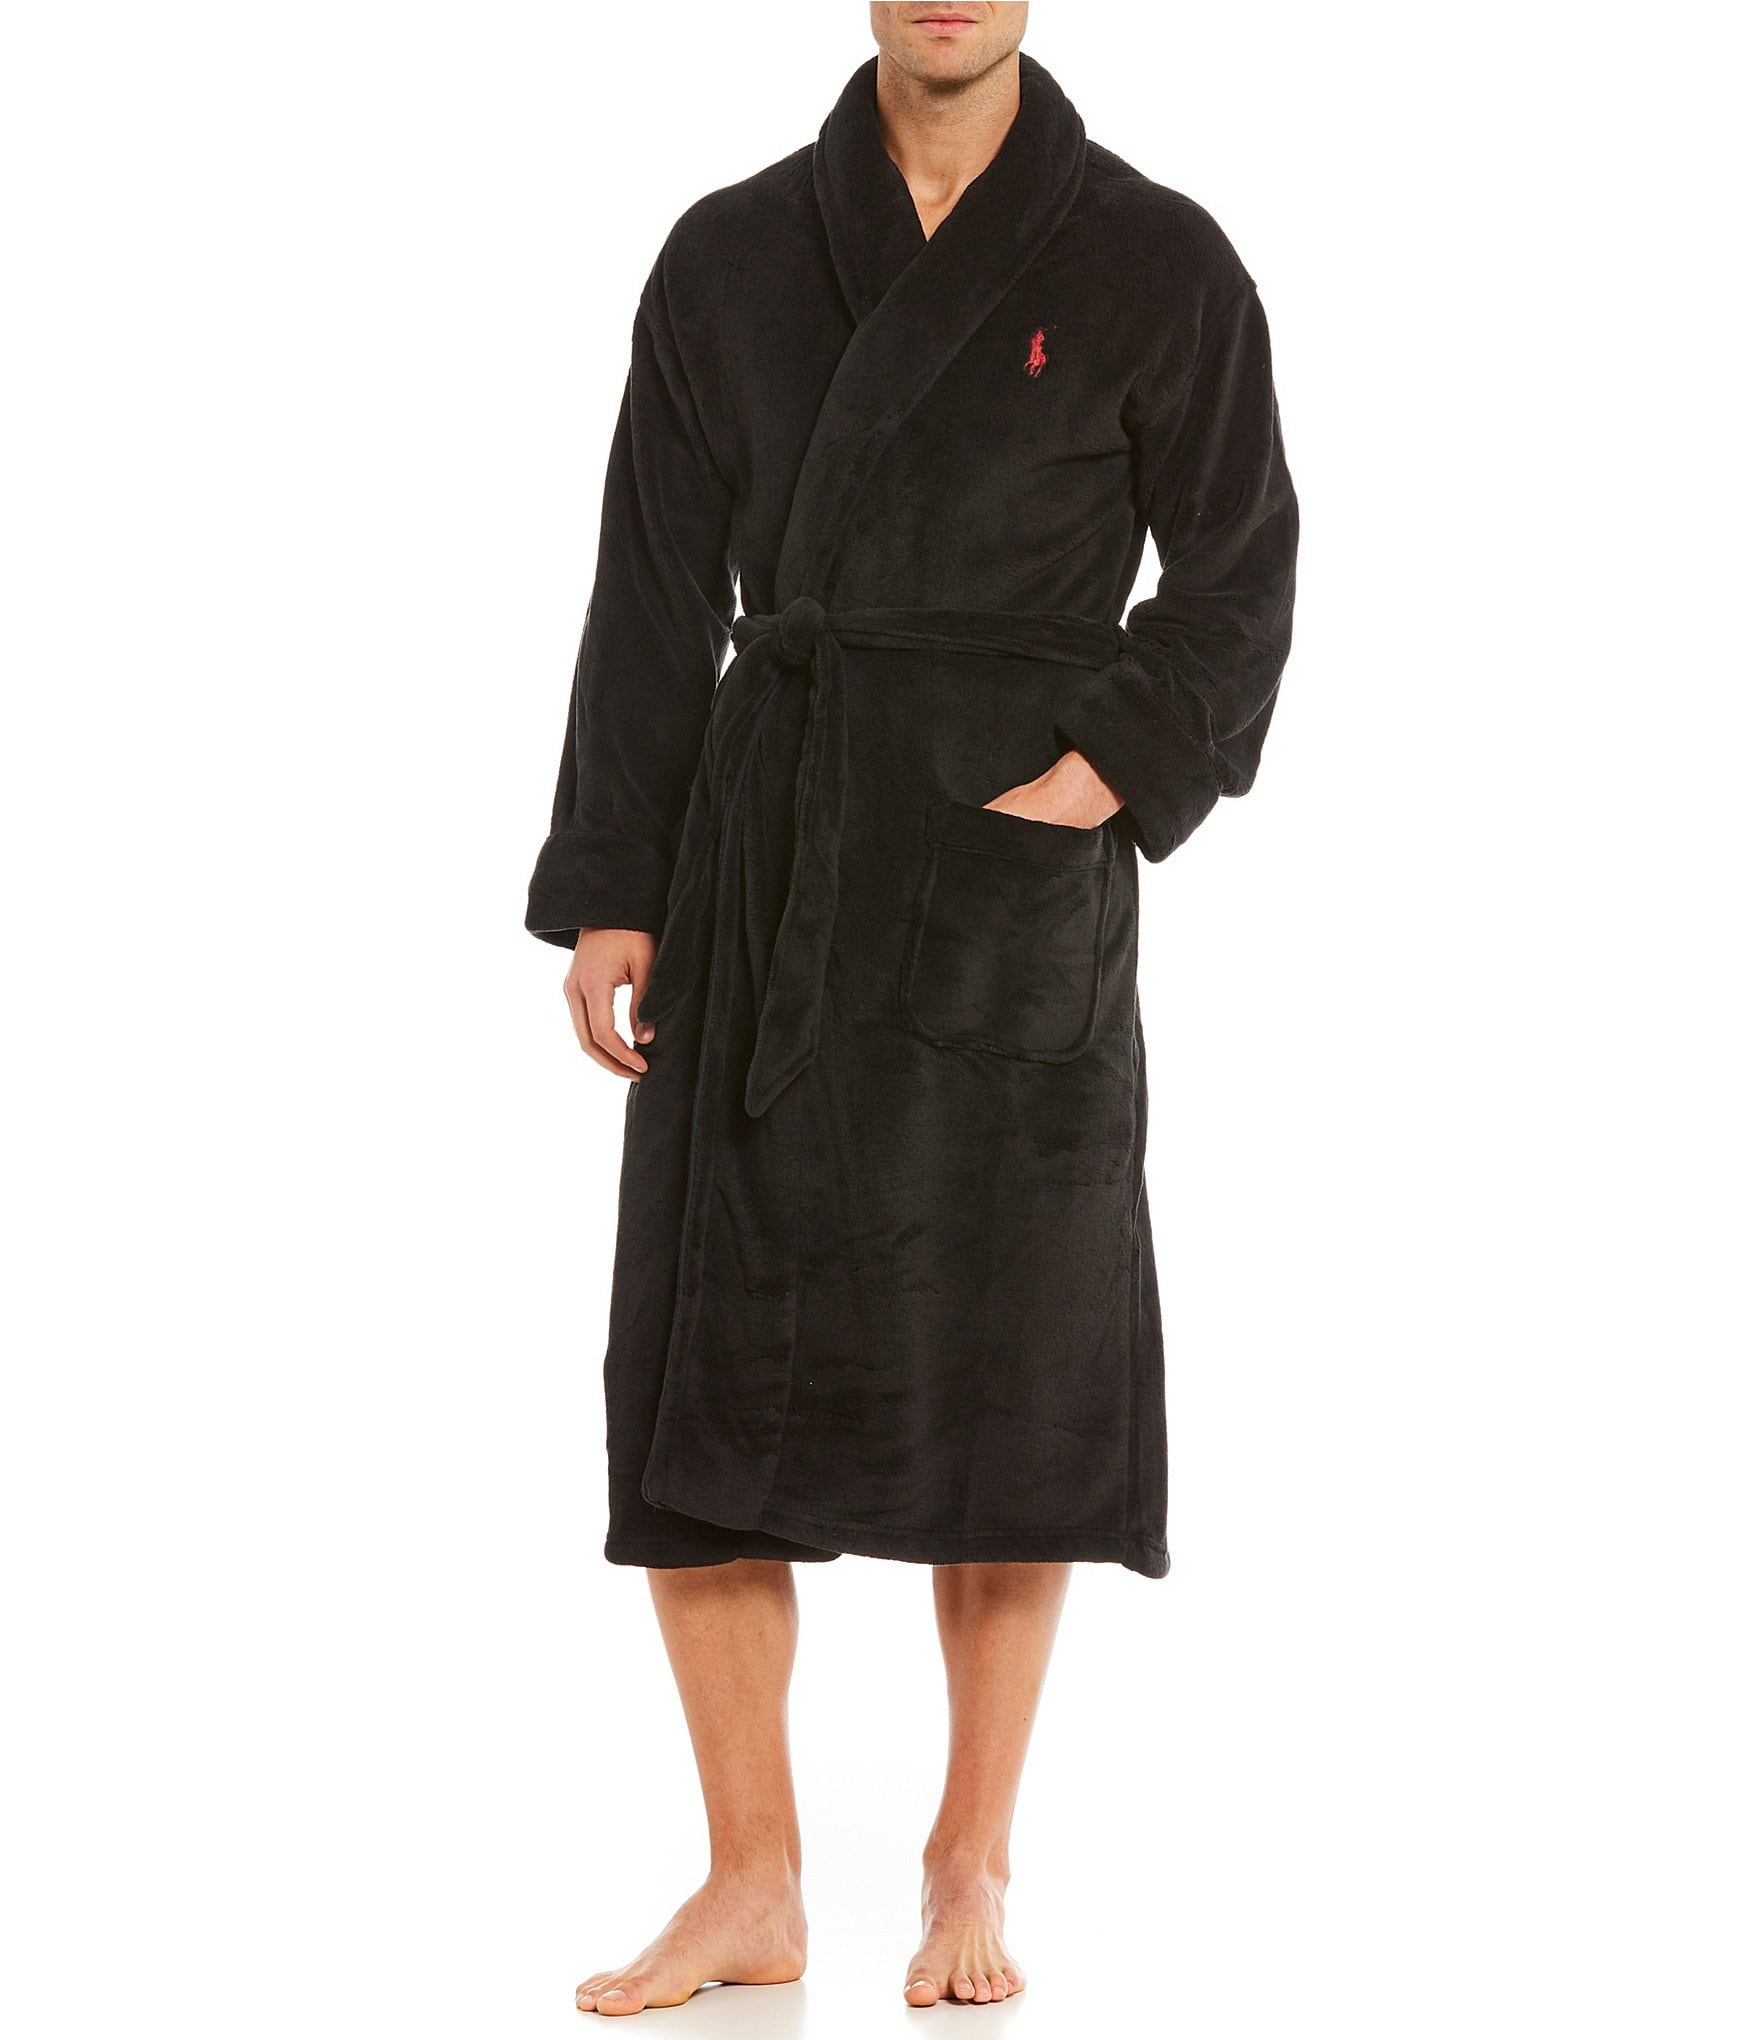 polo ralph lauren microfiber robe dillards. Black Bedroom Furniture Sets. Home Design Ideas